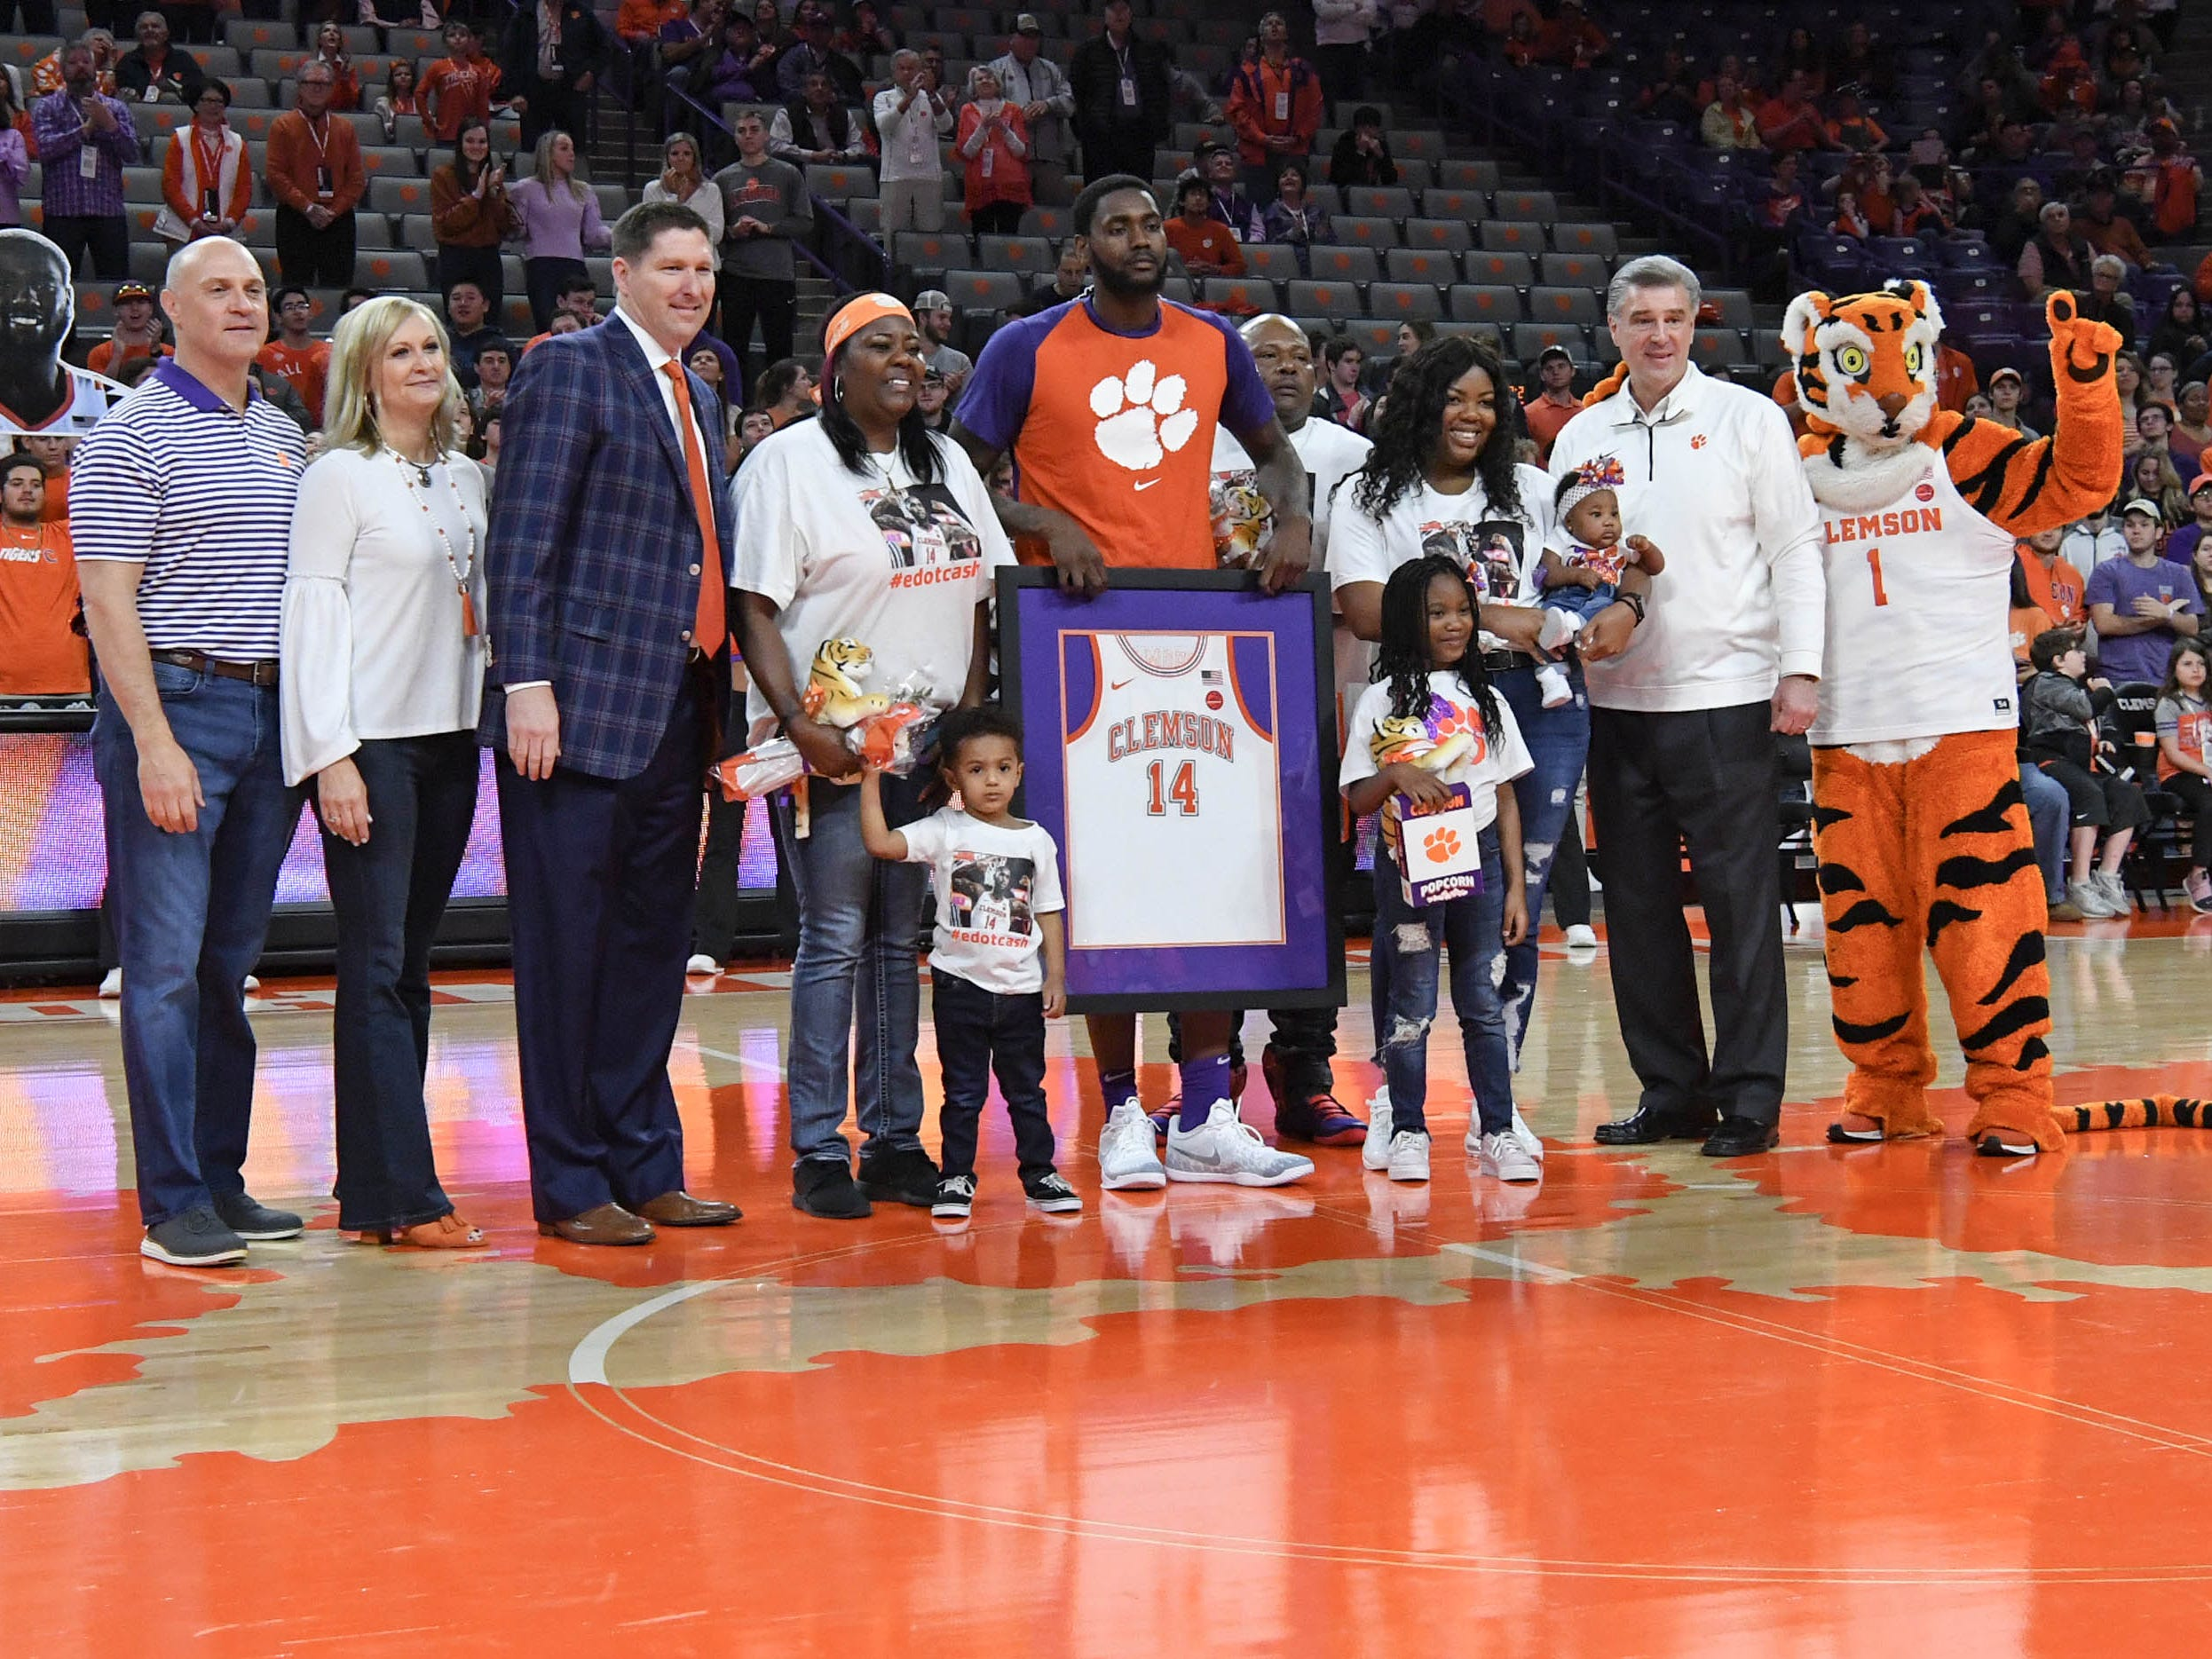 Clemson forward Elijah Thomas (14) poses with family as one of the five seniors honored before the game with Syracuse in Littlejohn Coliseum in Clemson Saturday, March 9, 2019.